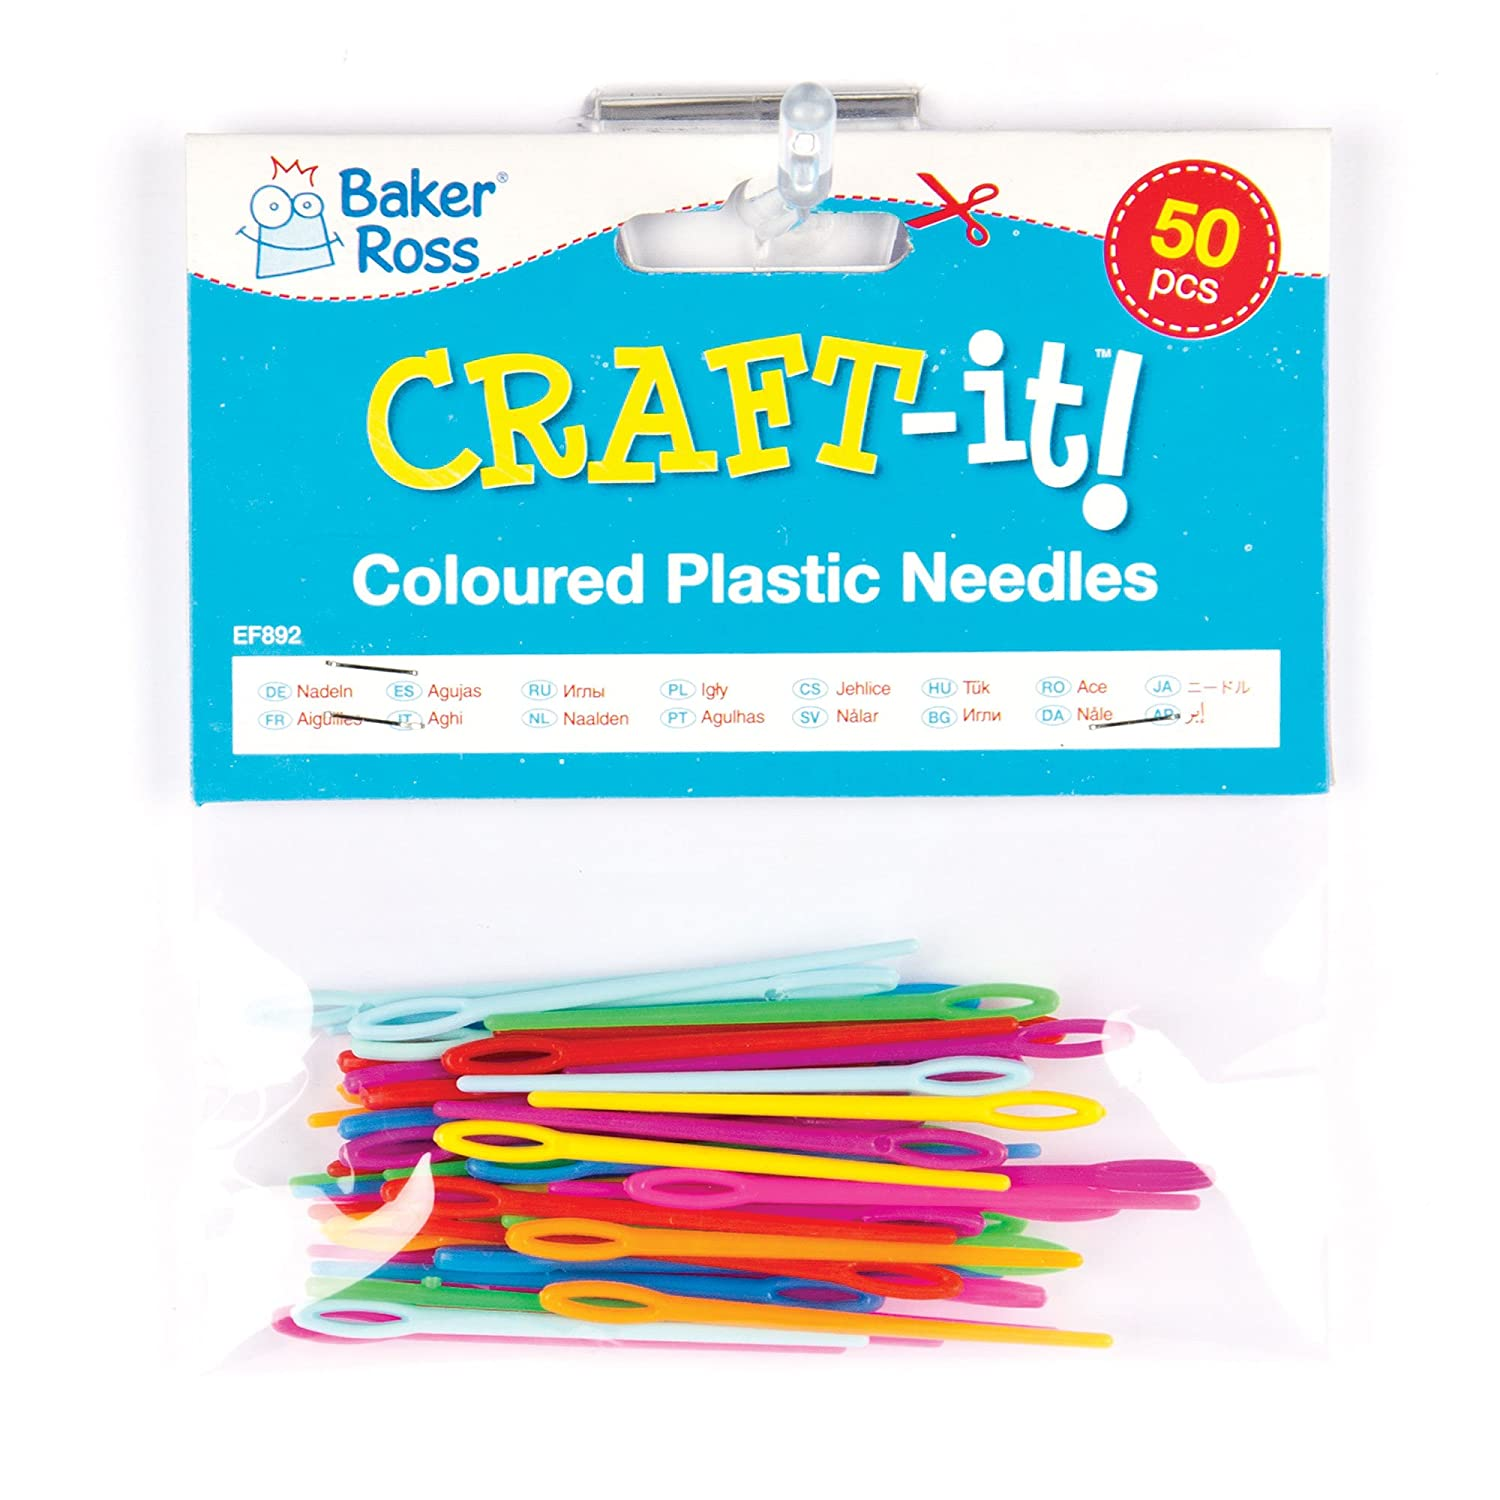 Baker Ross Colored Plastic Needles for Sewing and Weaving Crafts Ideal for Children Pack of 50